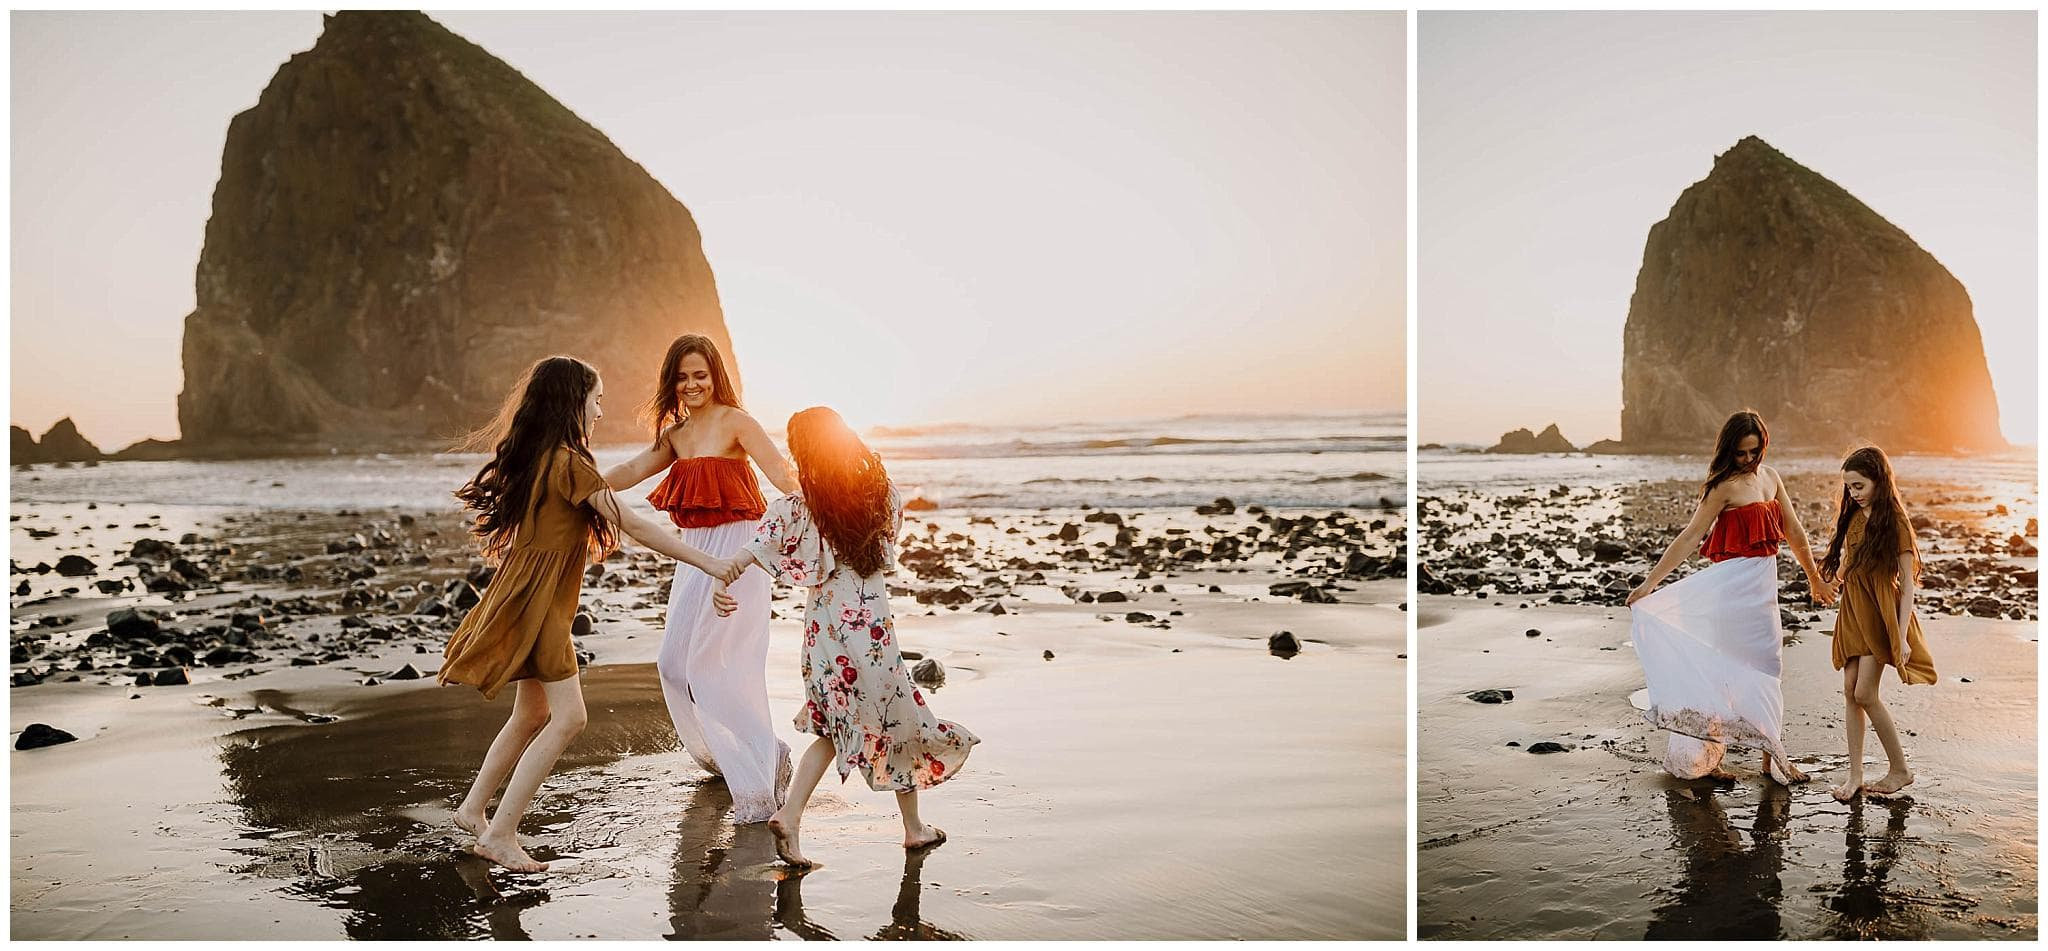 mom dancing with her two girls in dresses at the coast in oregon